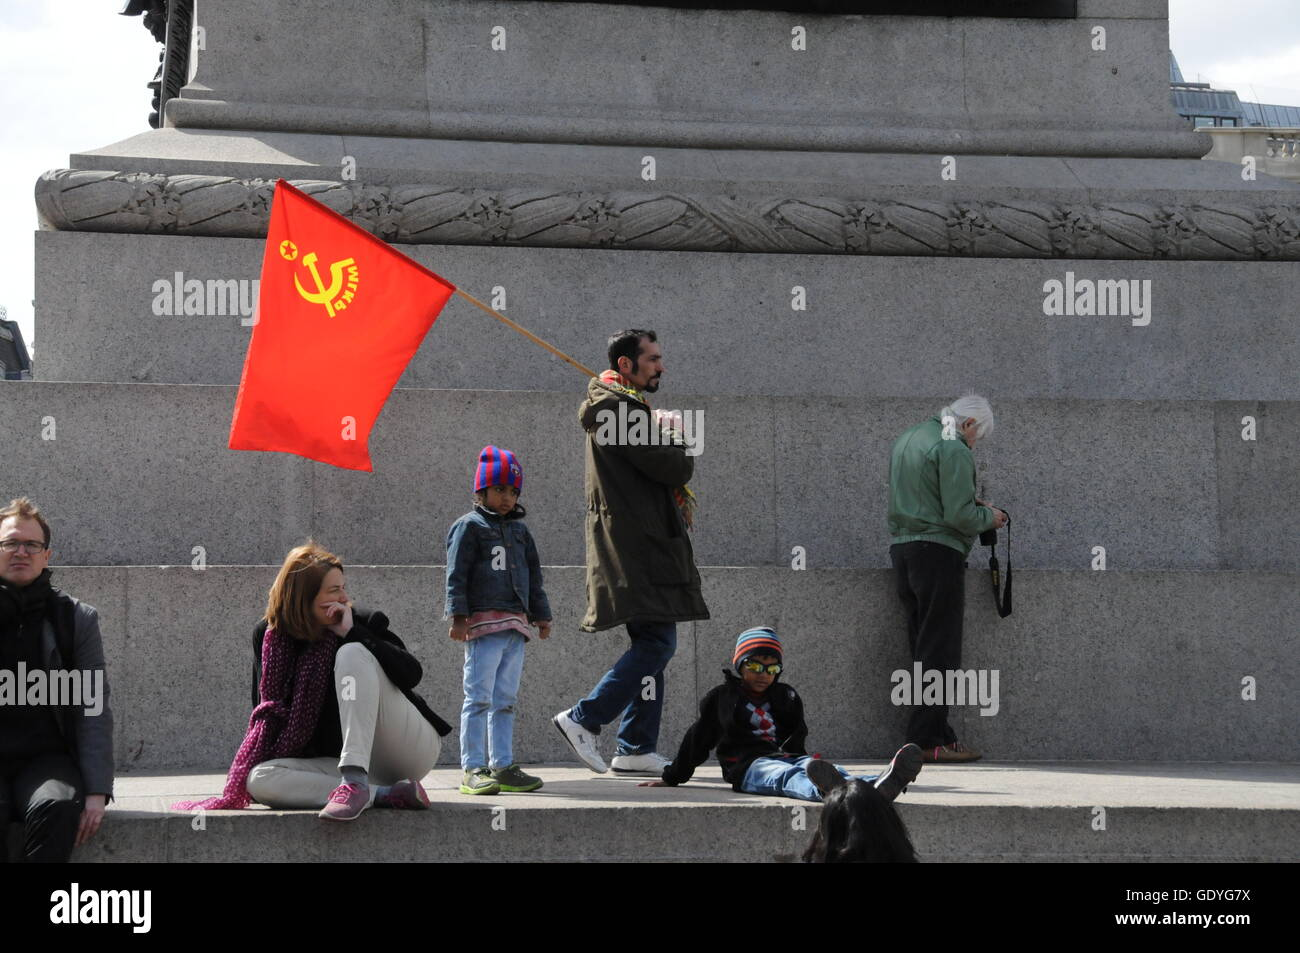 International Workers' Day in London's Trafalgar Square. - Stock Image